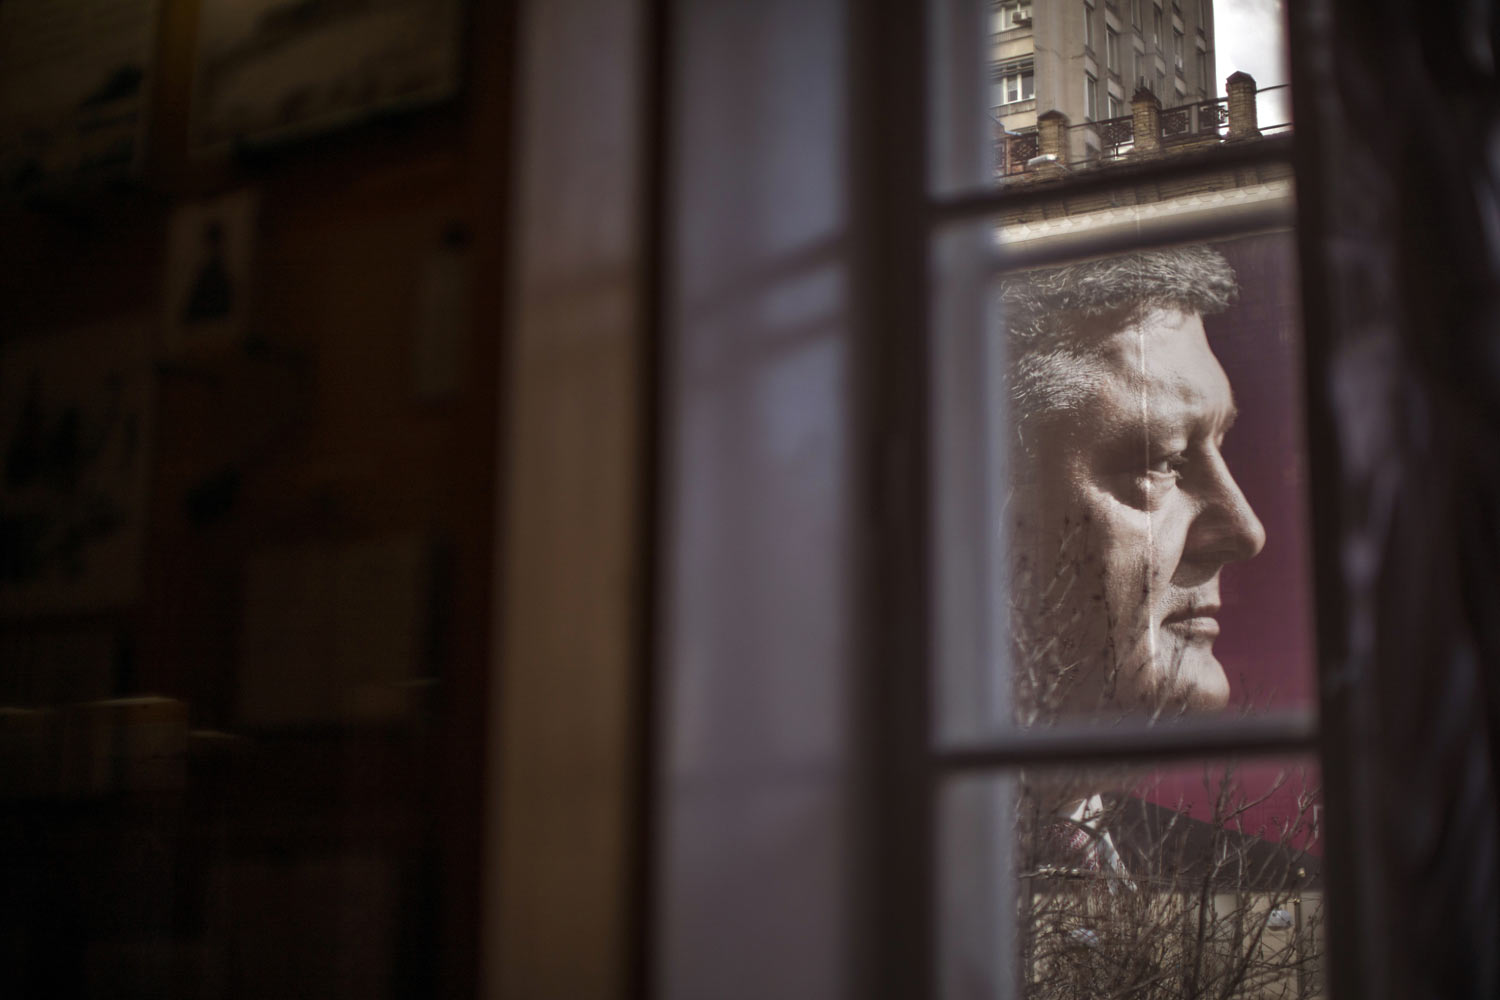 A large billboard with the face of Petro Poroshenko, president of Ukraine and candidate for 2019 elections, is seen through a window in central Kiev, Ukraine, Tuesday, March 26, 2019. Presidential elections are scheduled for March 31. (AP Photo/Emilio Morenatti)